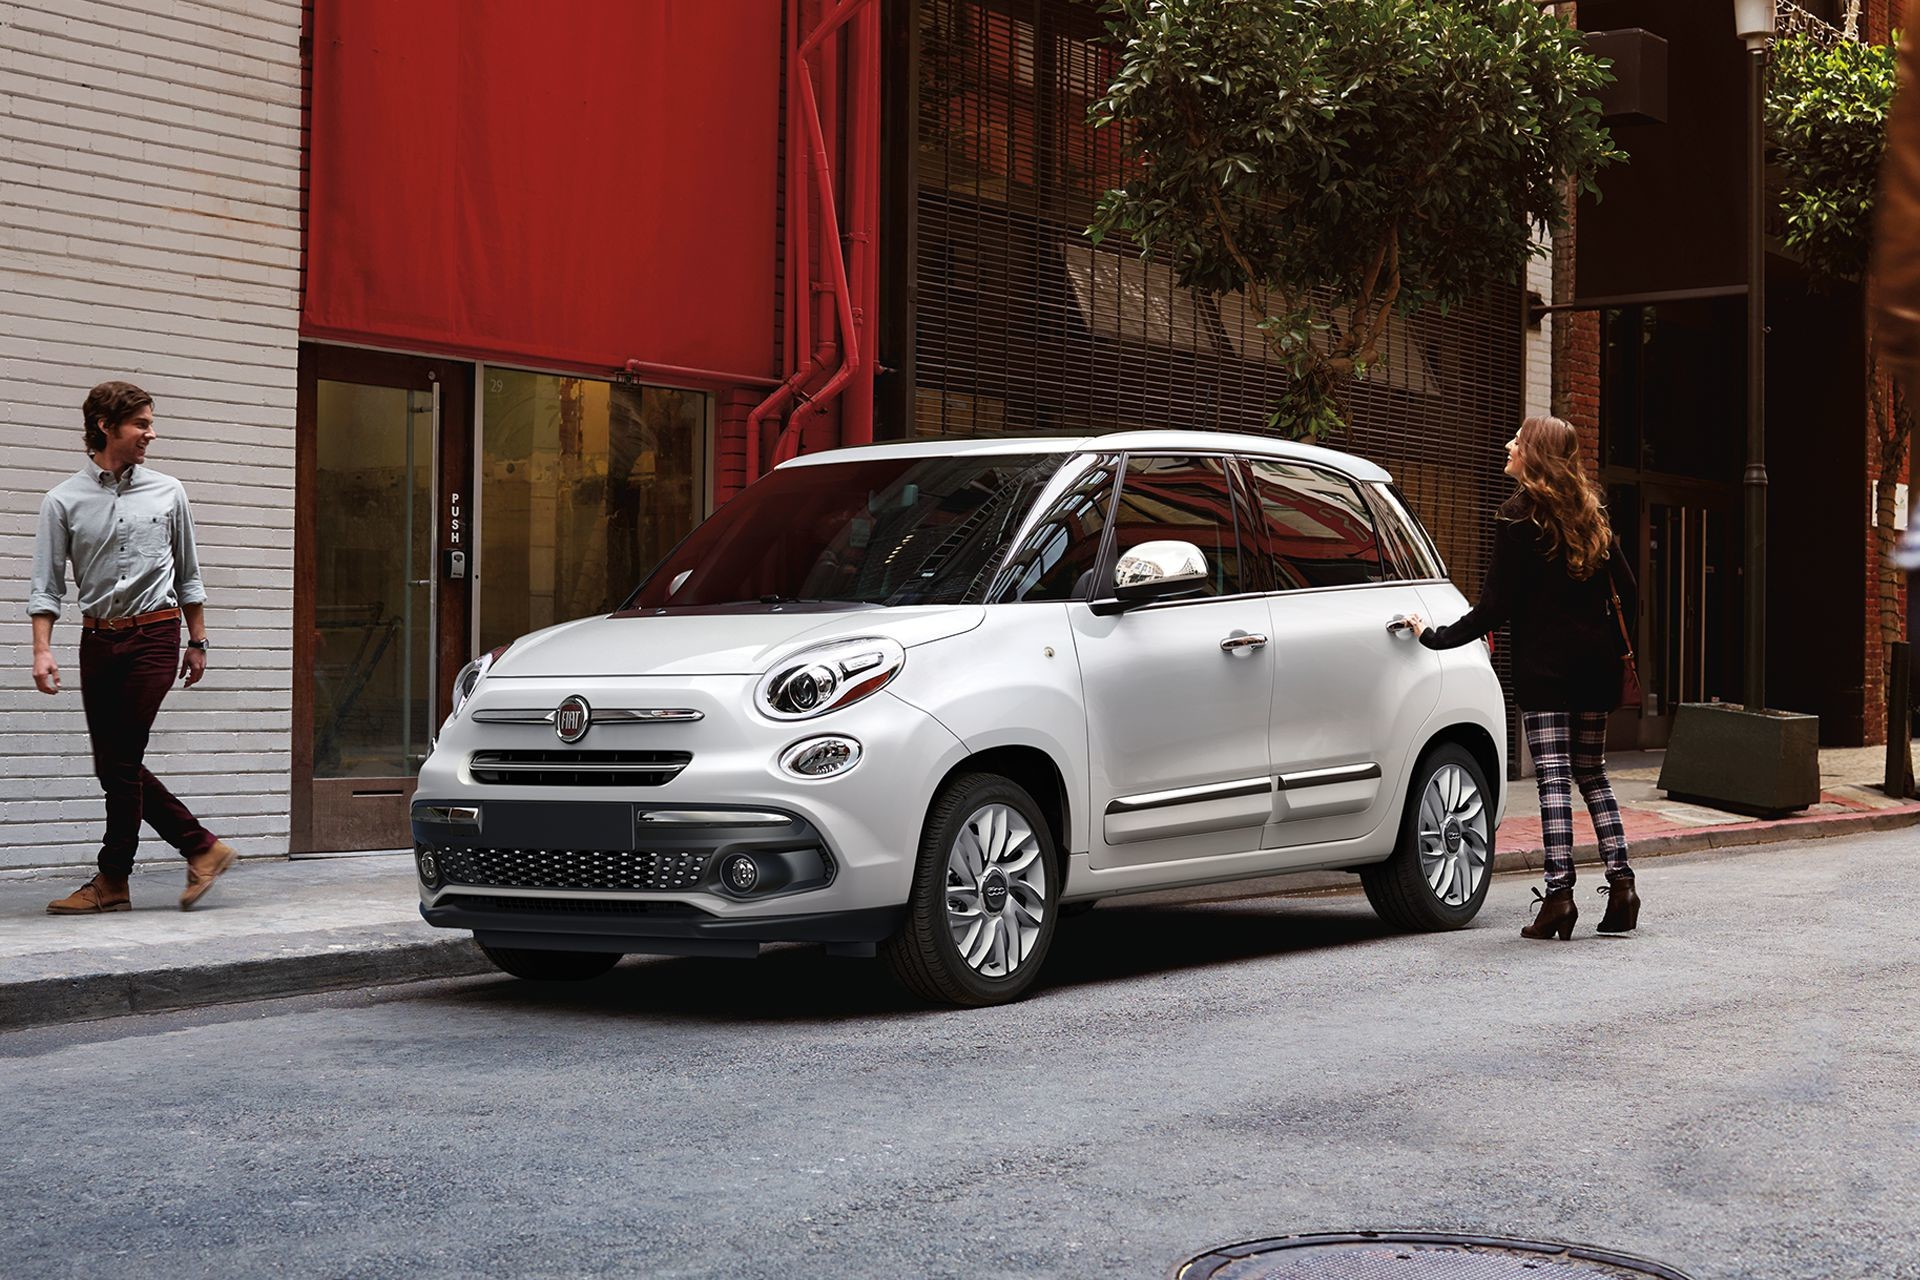 2018 Fiat 500L 4-door exterior side view